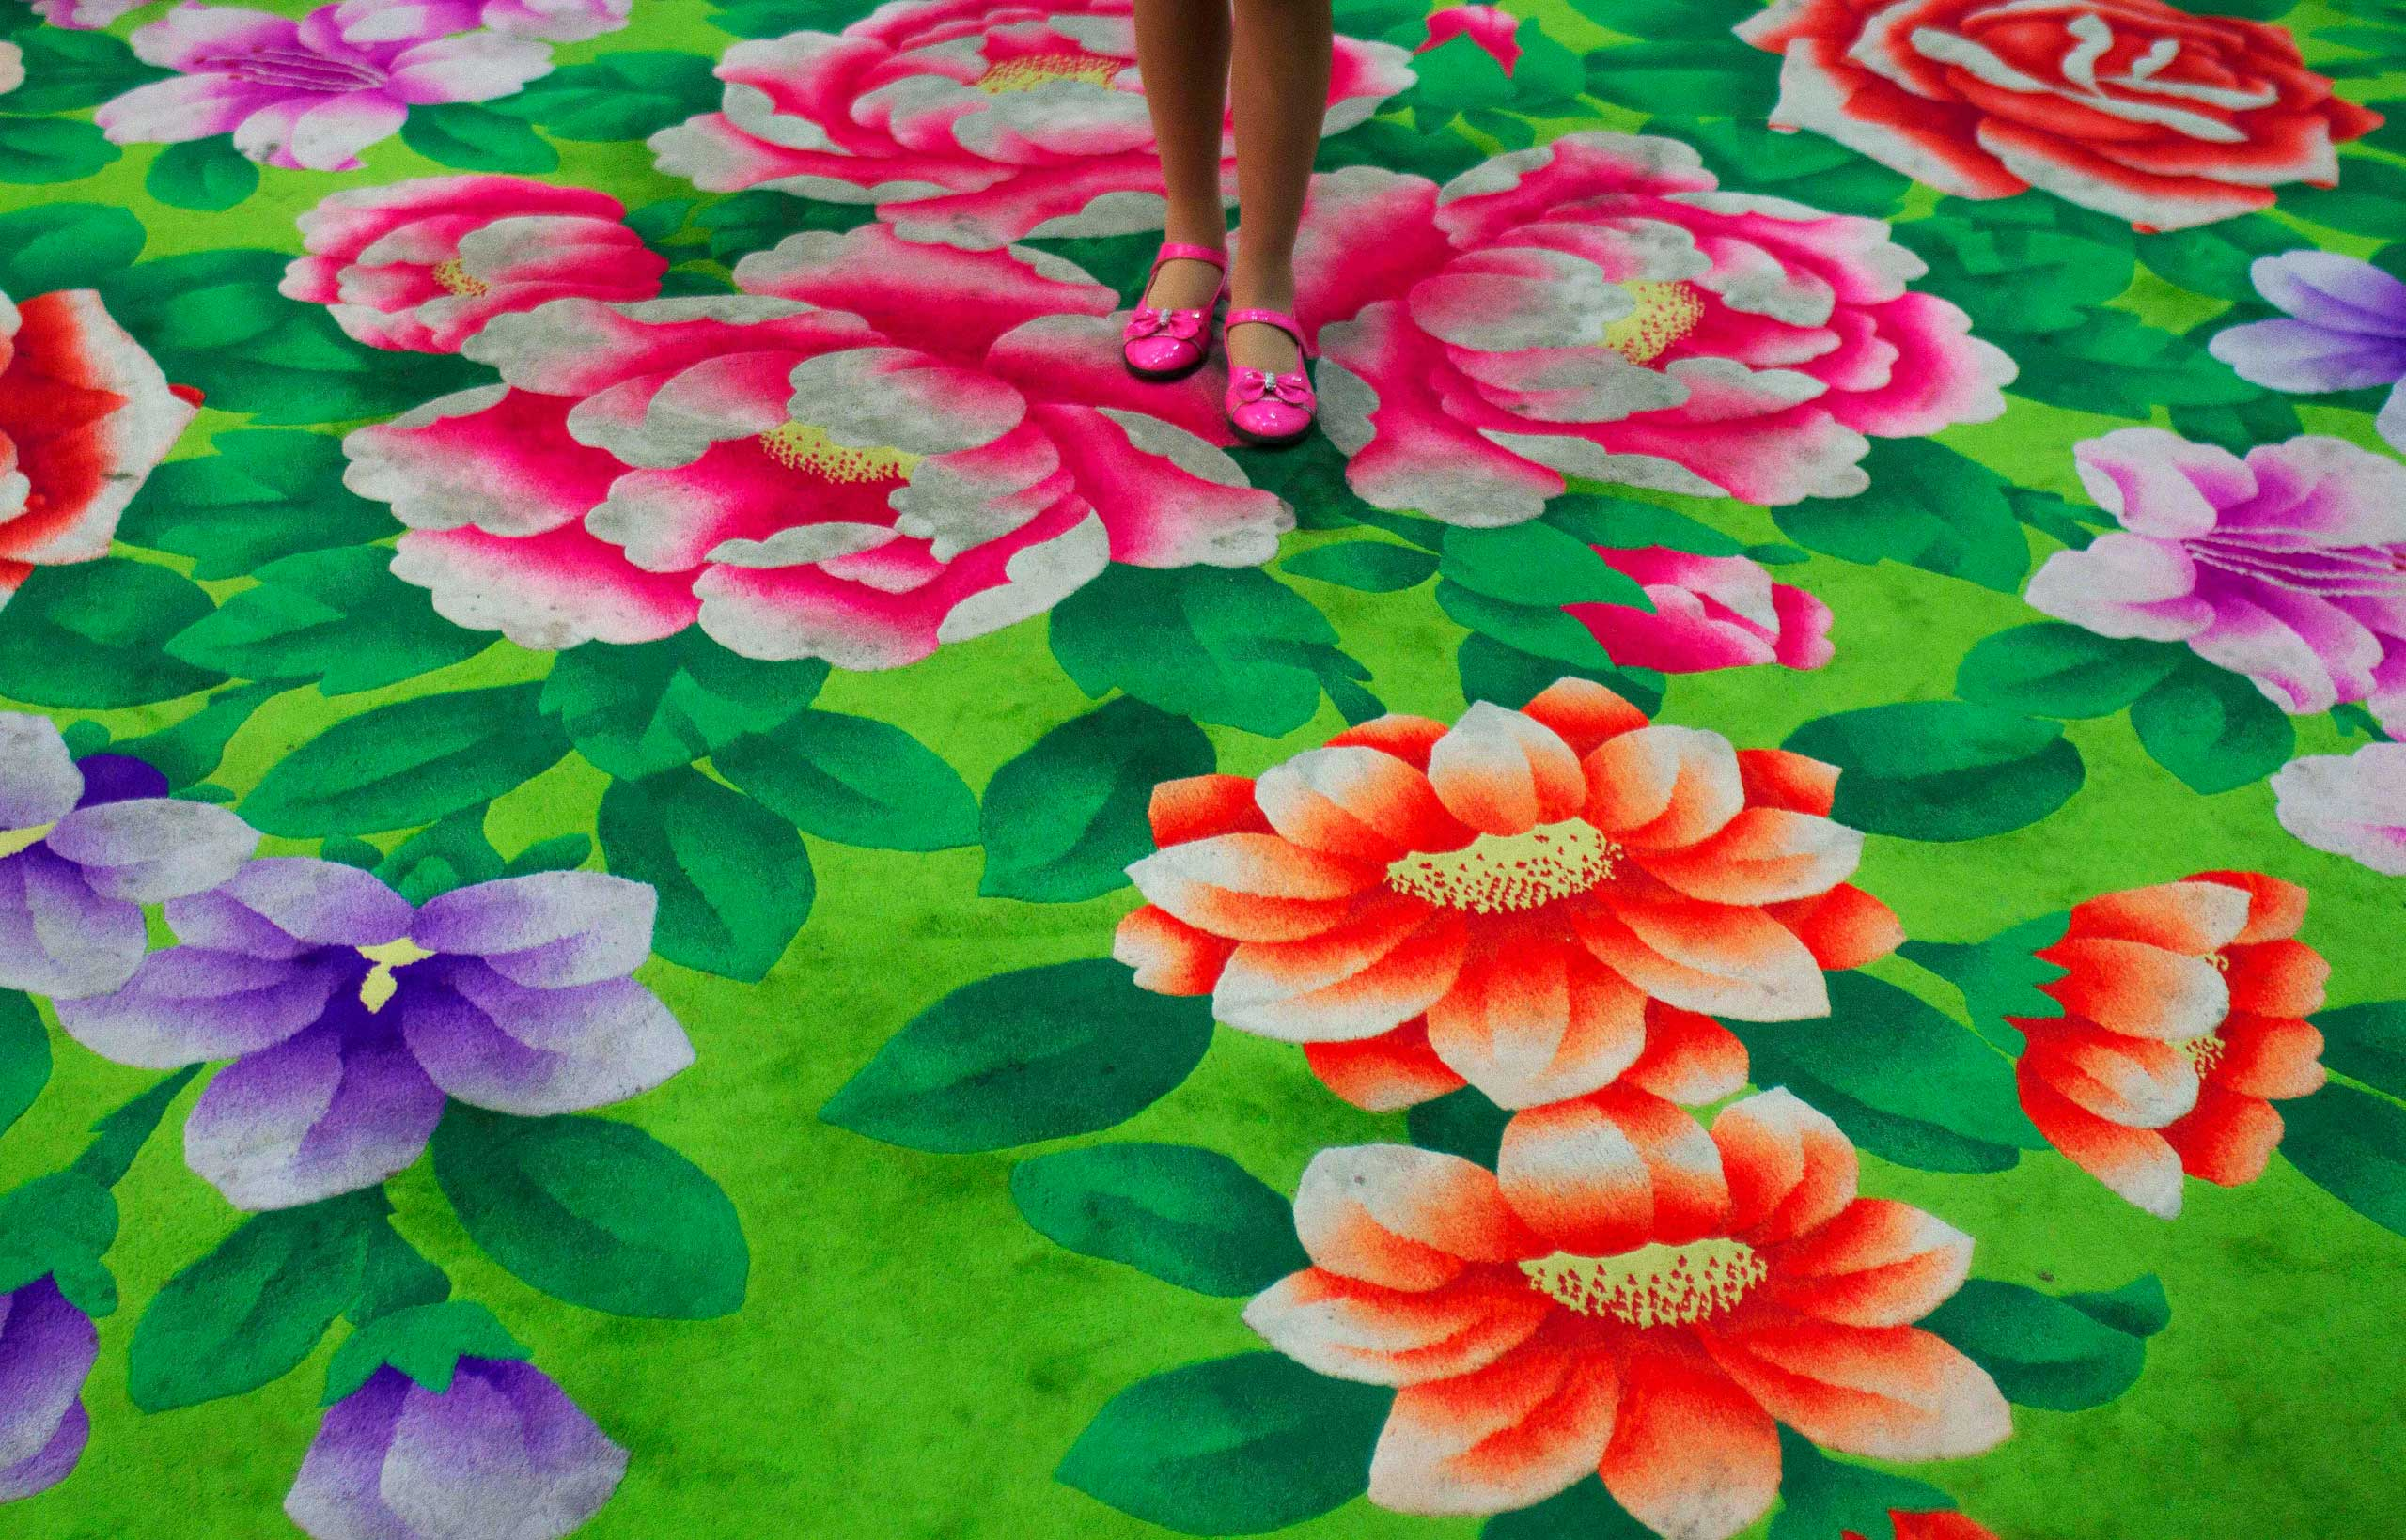 April 14, 2011. A young girl stands on floral-print carpet inside the Pyongyang Children's Palace in Pyongyang.